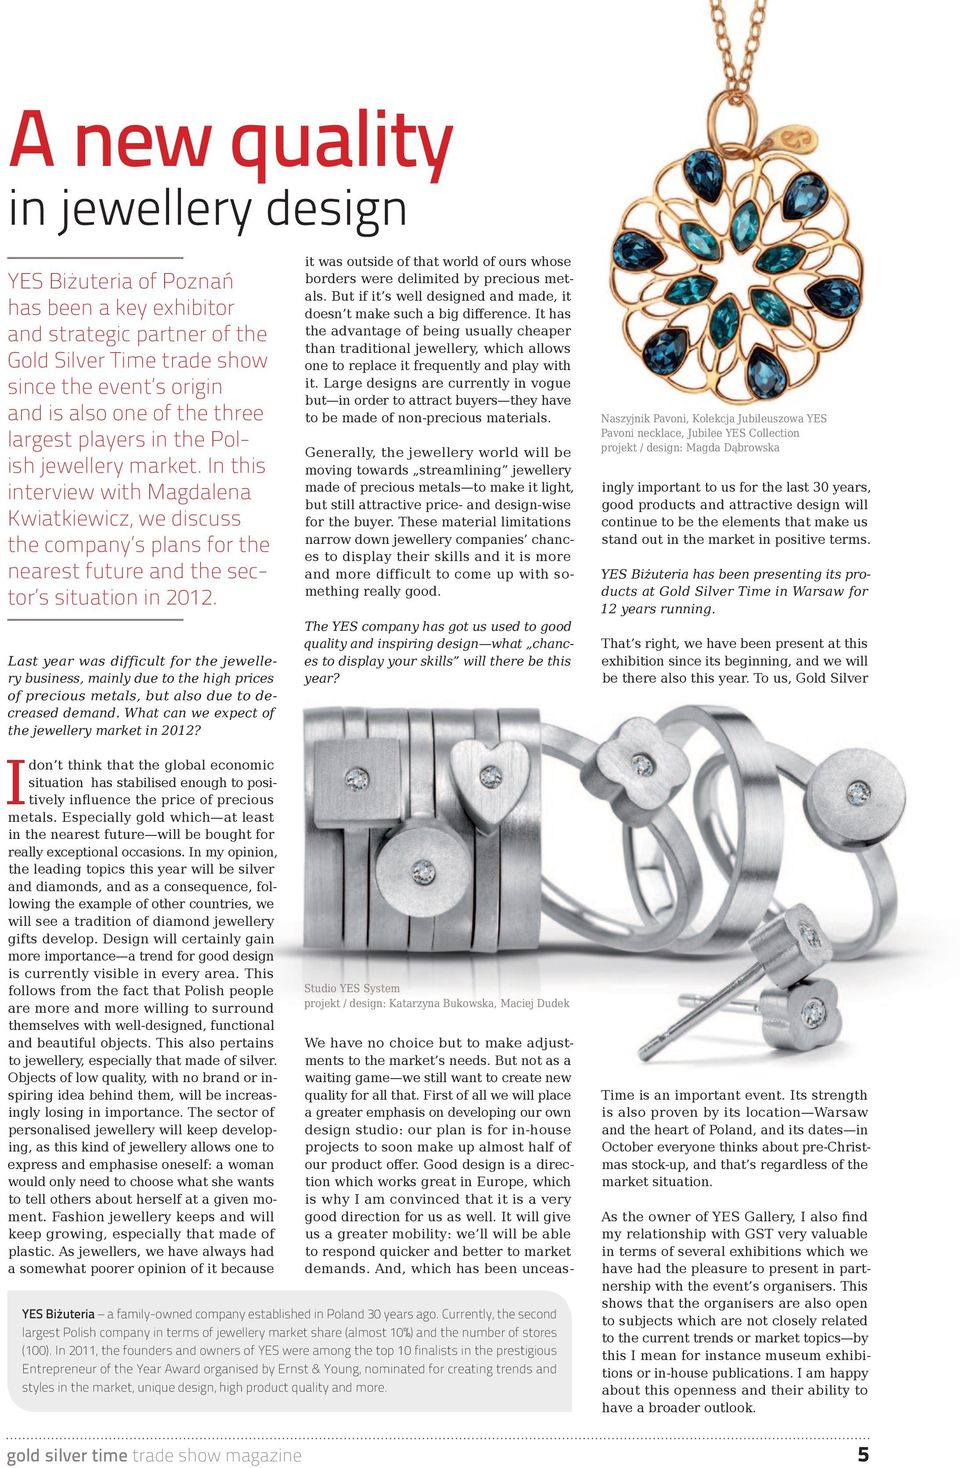 Last year was difficult for the jewellery business, mainly due to the high prices of pre cious metals, but also due to decreased demand. What can we expect of the jewellery market in 2012?